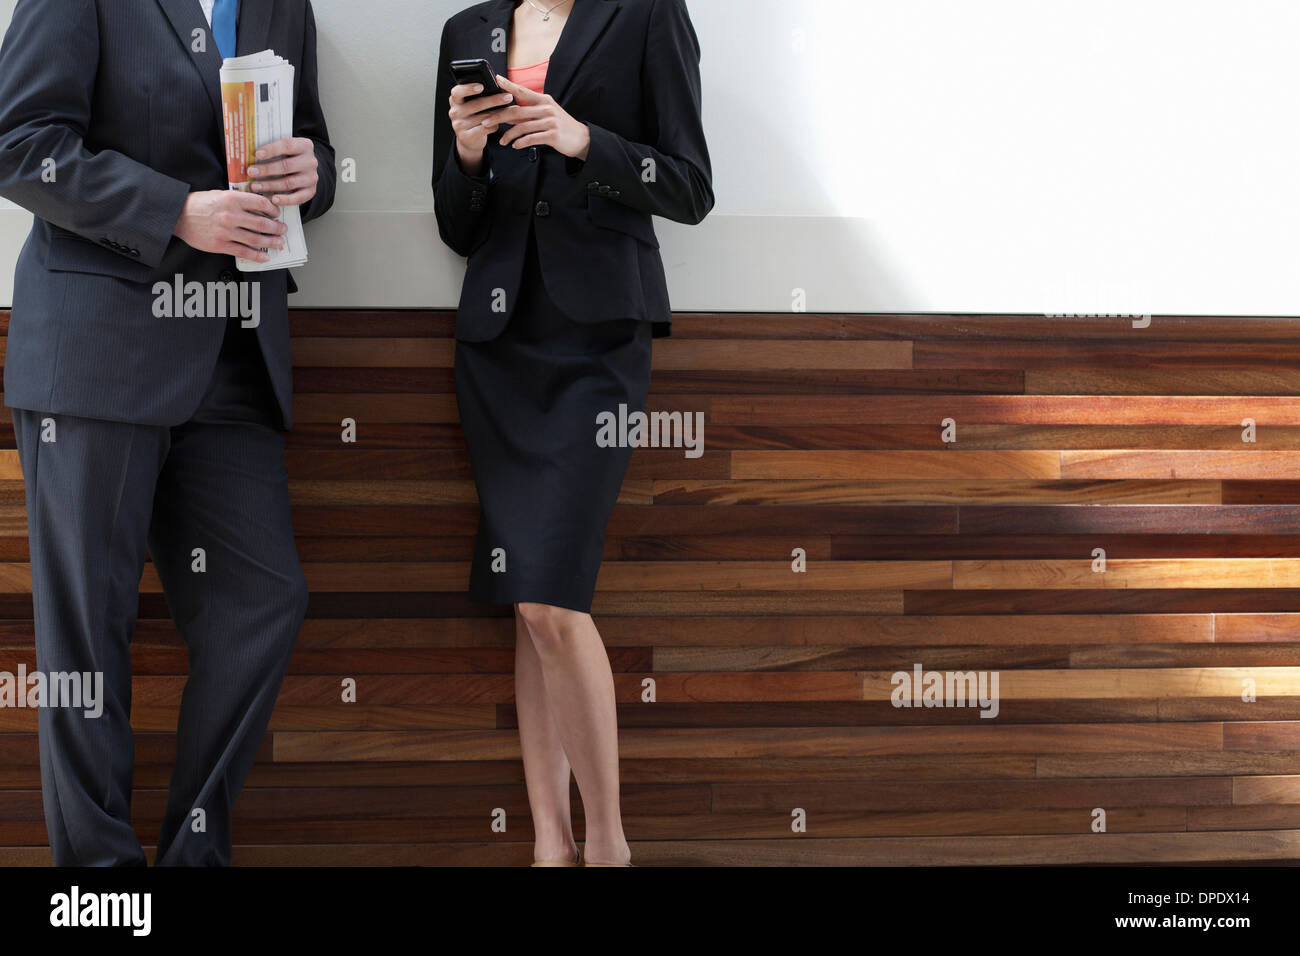 Businesspeople standing together Stock Photo